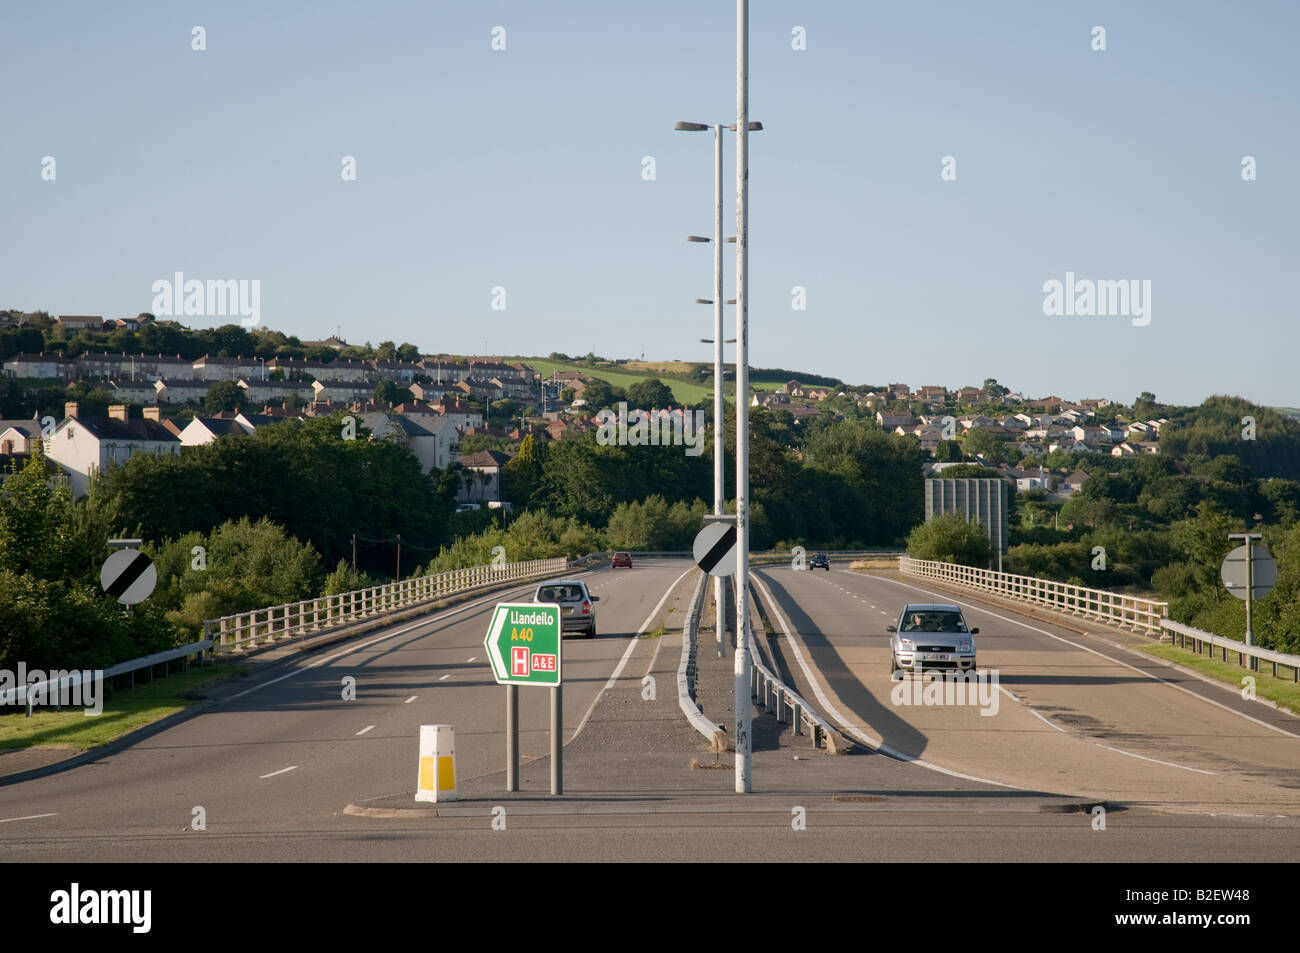 virtually empty traffic-free A40 dual carriageway road, the Carmarthen by-pass Wales UK, summer afternoon - Stock Image